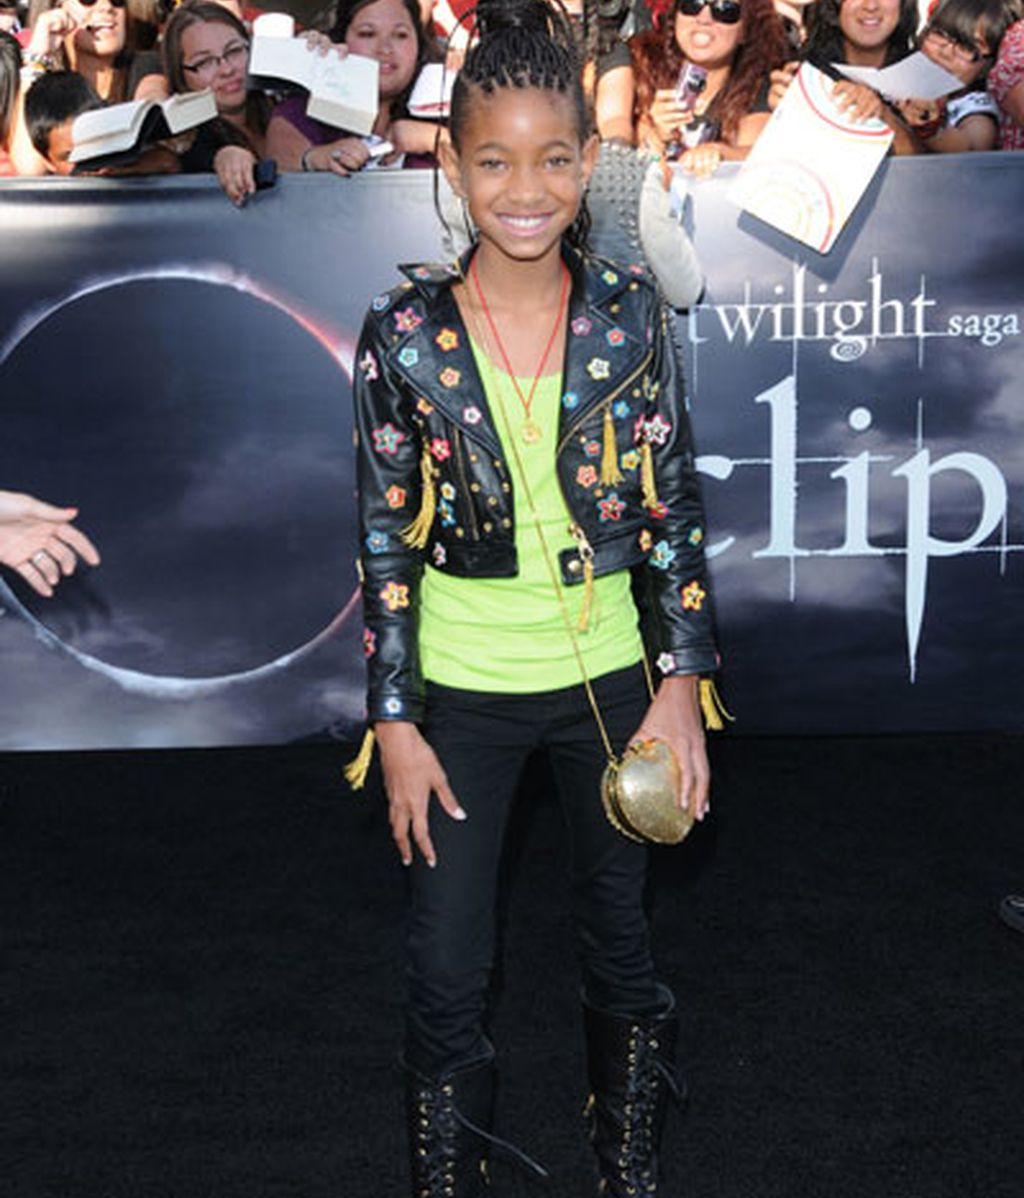 Willow Smith o cómo vestirse para ser una it girl